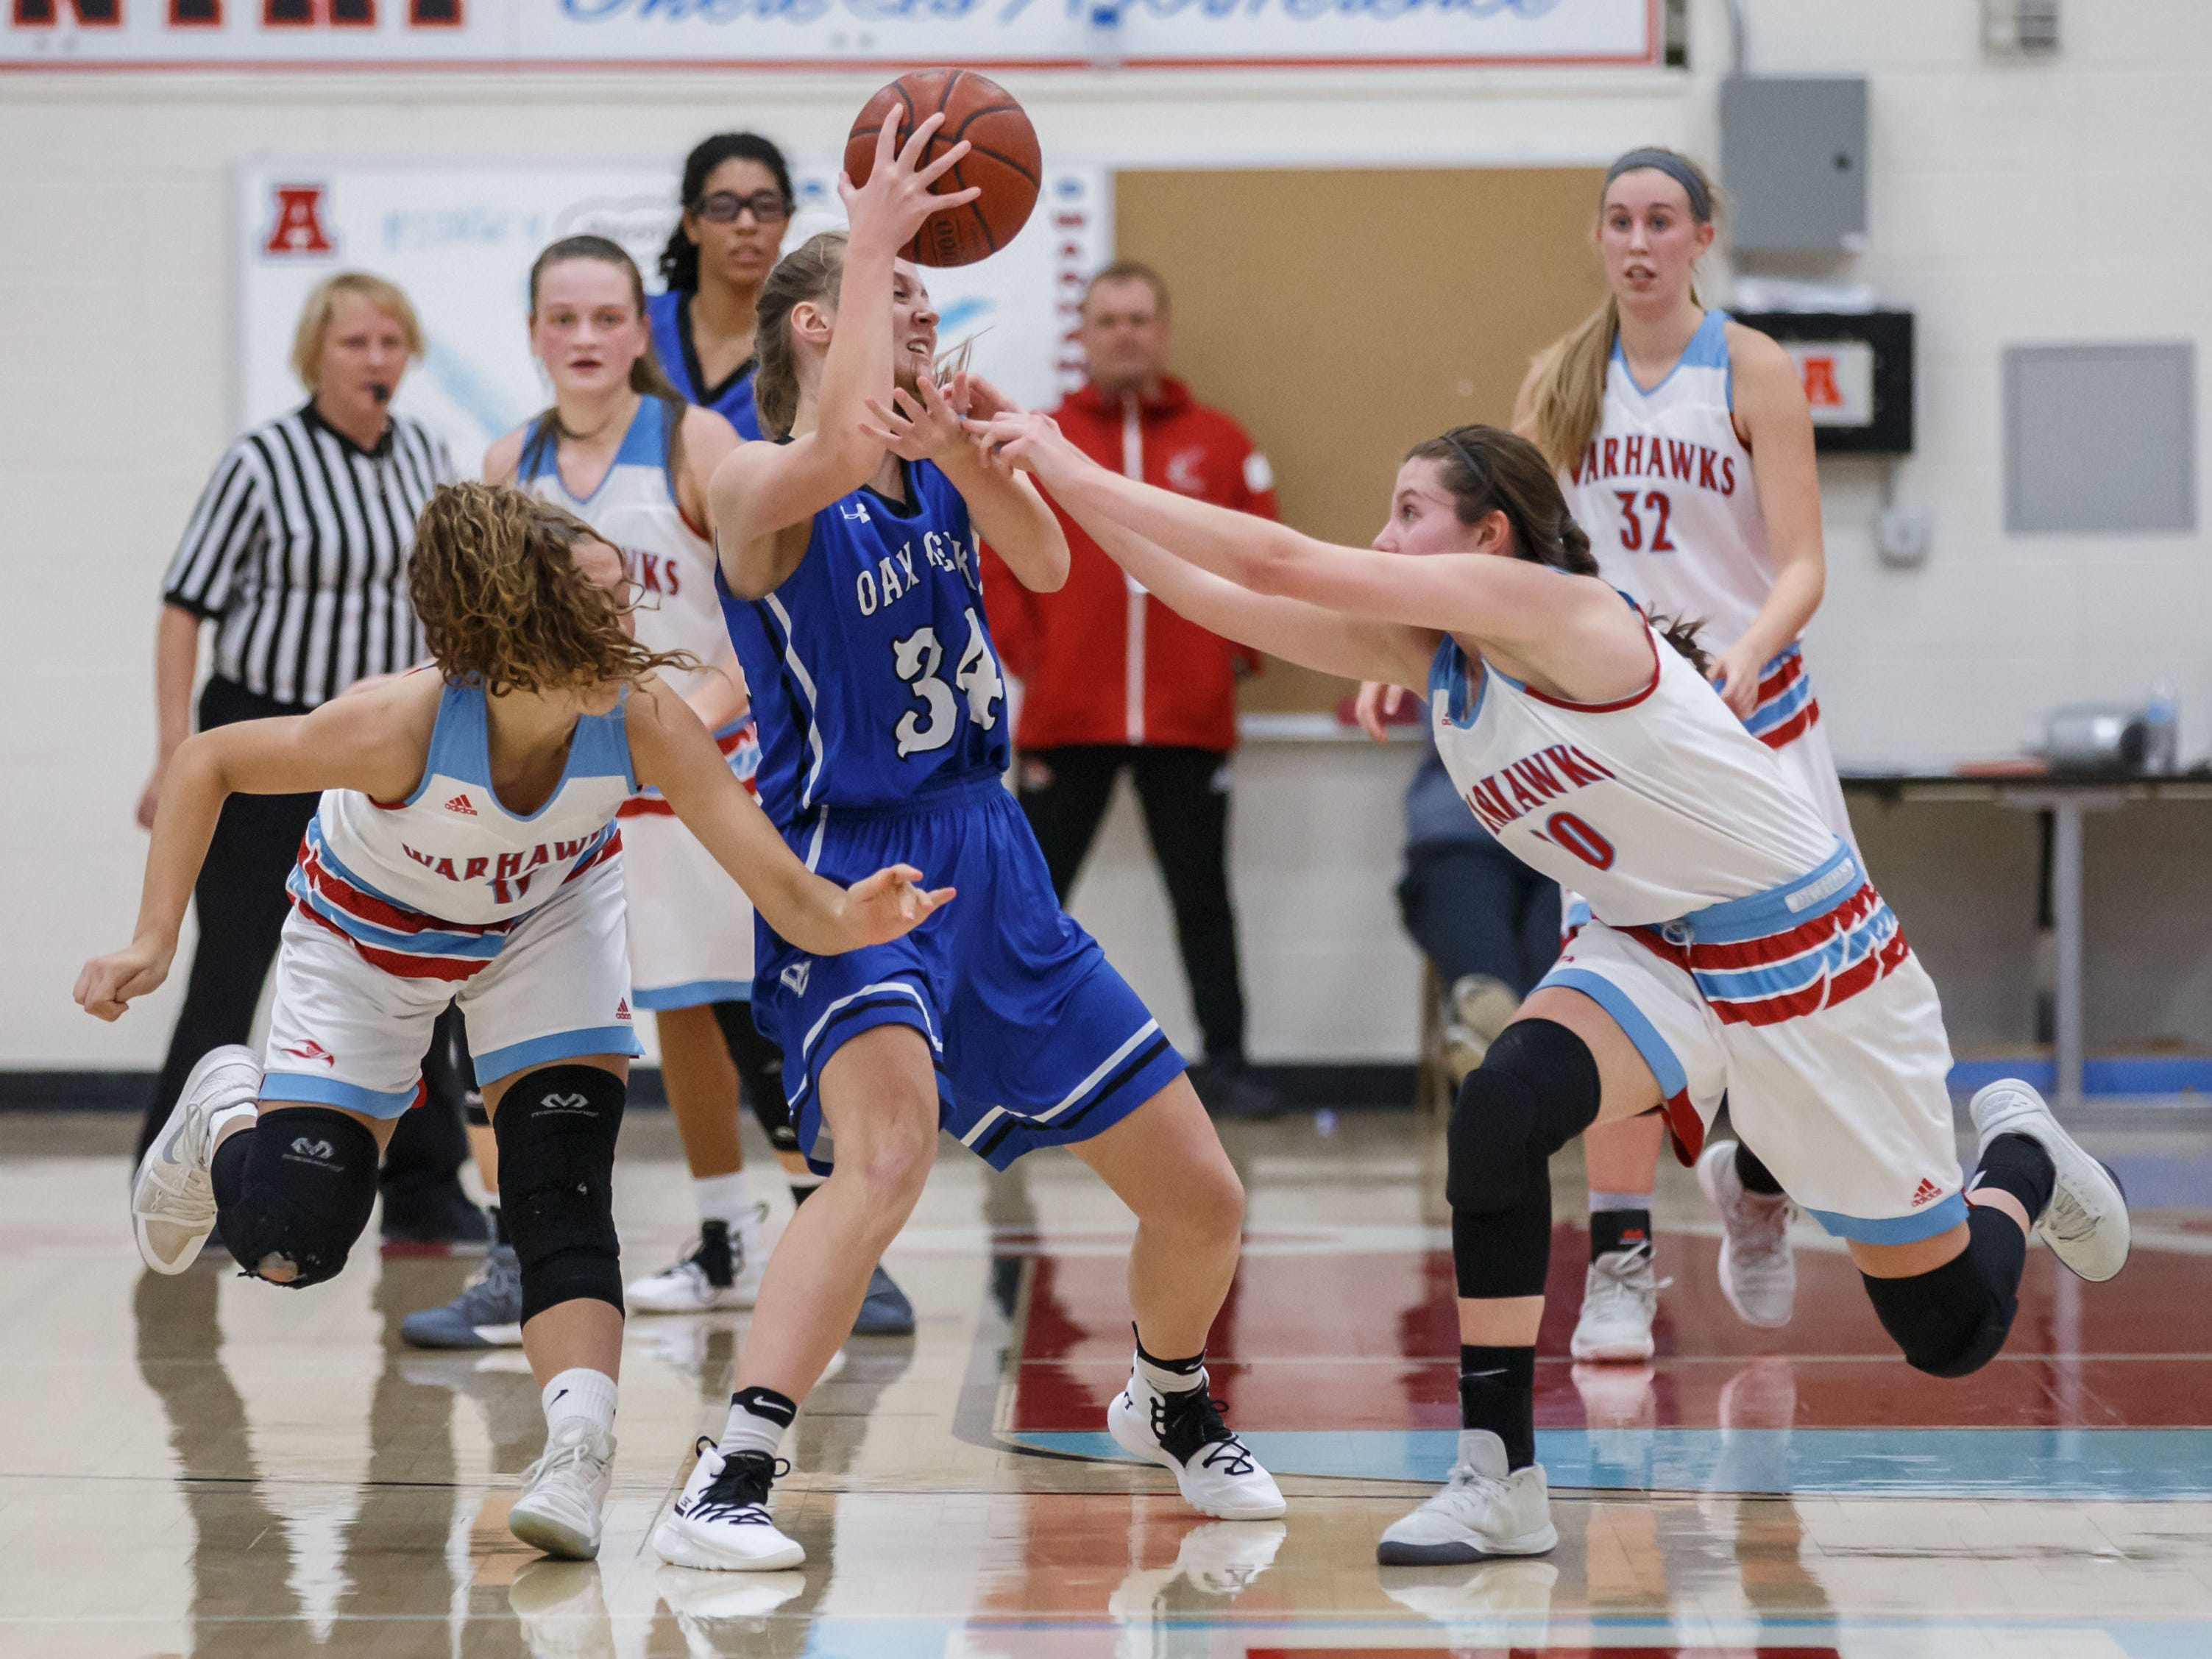 Oak Creek sophomore Jamie Finn (34) battles Arrowhead's Anna Oehmcke (left) and Emily Giese during the game in Hartland on Friday, Nov. 16, 2018.